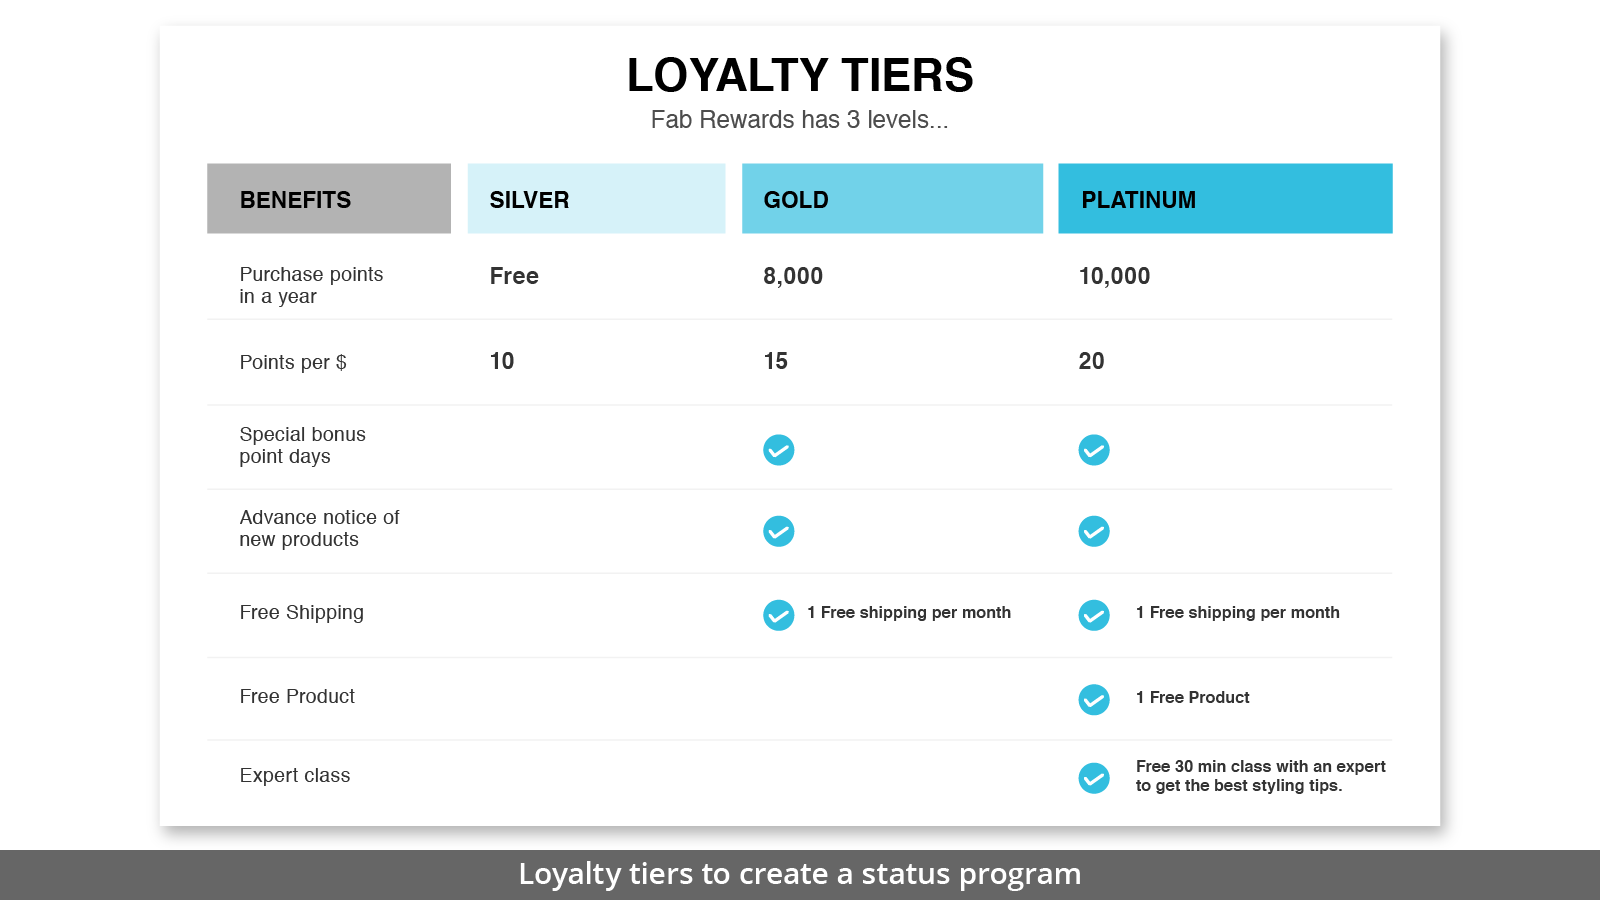 LOYALTY TIERS TO CREATE A STATUS PROGRAM